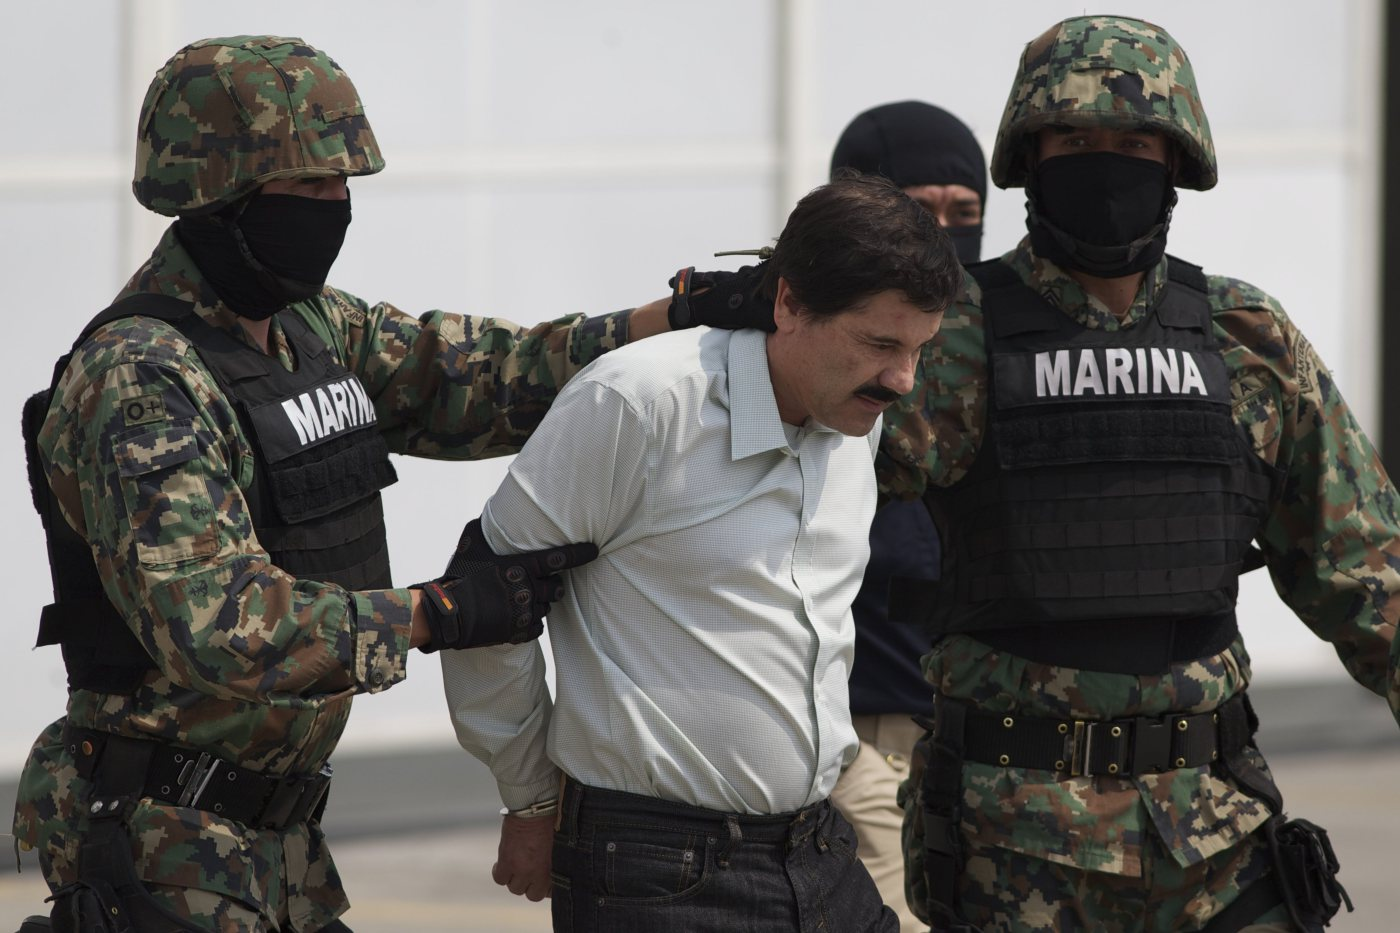 Joaquin  El Chapo  Guzman is escorted to a helicopter in handcuffs by Mexican marines at a navy hanger in Mexico City, on Feb. 22, 2014.